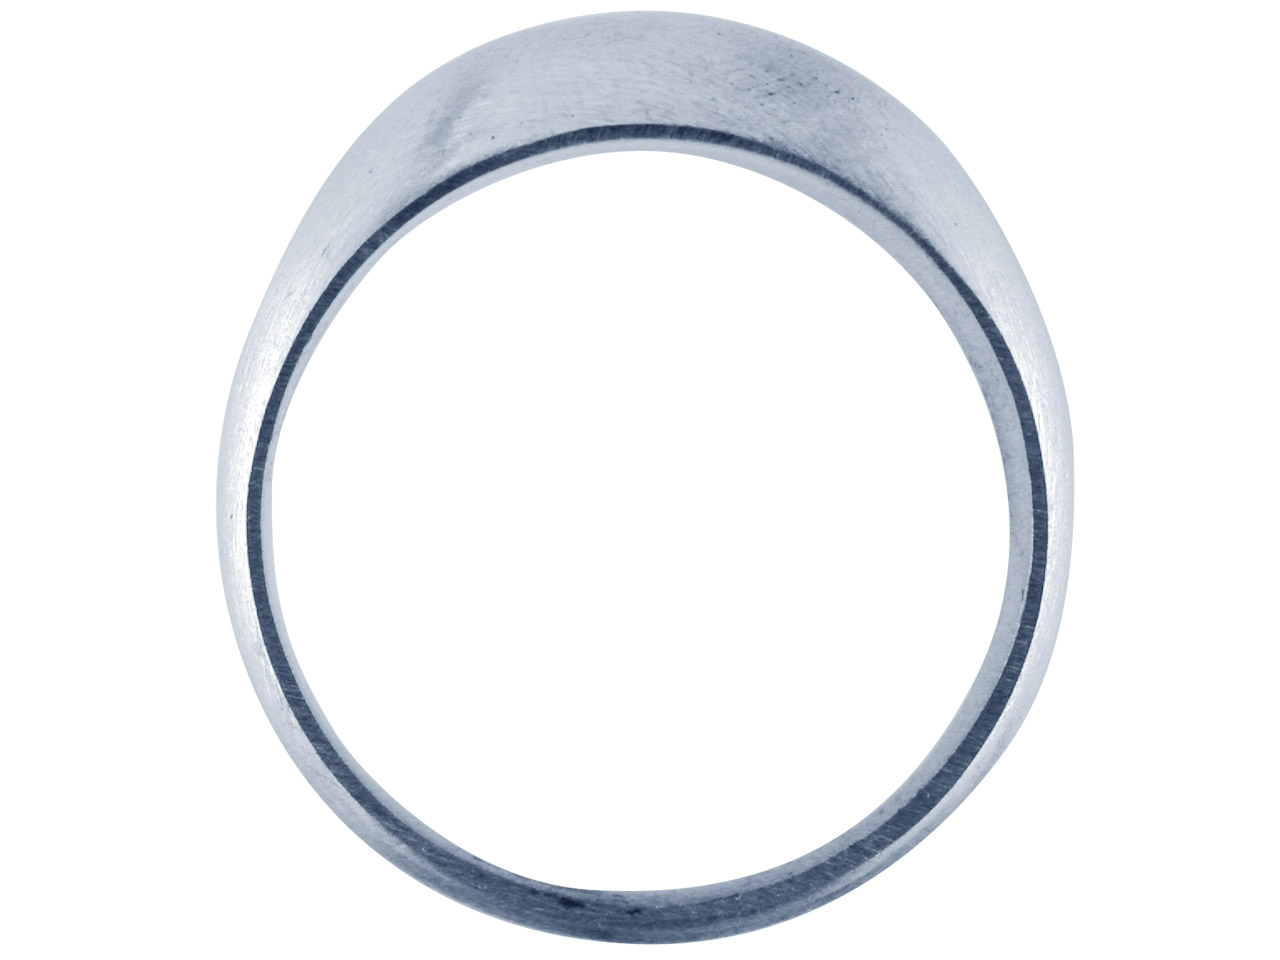 Sterling Silver C16 Domed Ring 4mm Head Hallmarked Widest Point 10mm  Size U Plain Solid Back